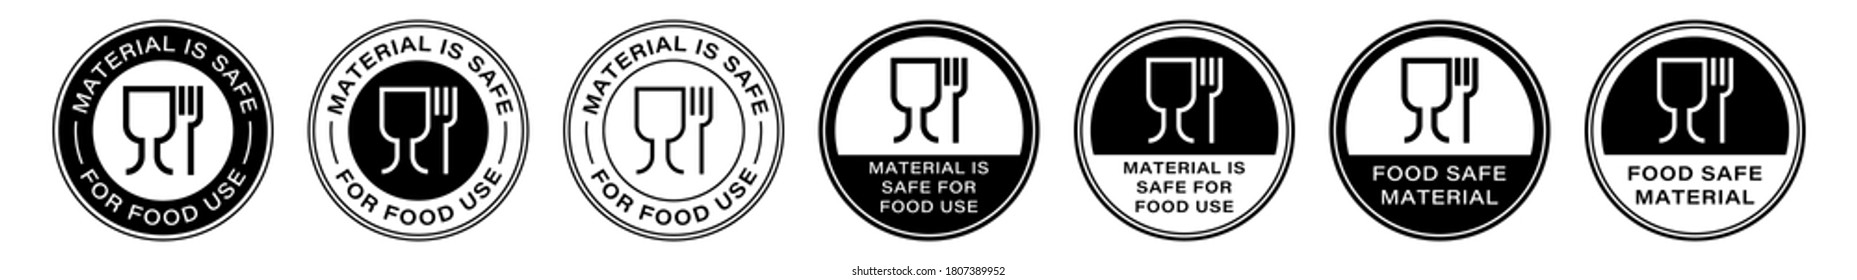 Set of stamps. Labeling - not food grade or non food grade materials. Glass and fork flat icon stamp set. Vector grouped elements.